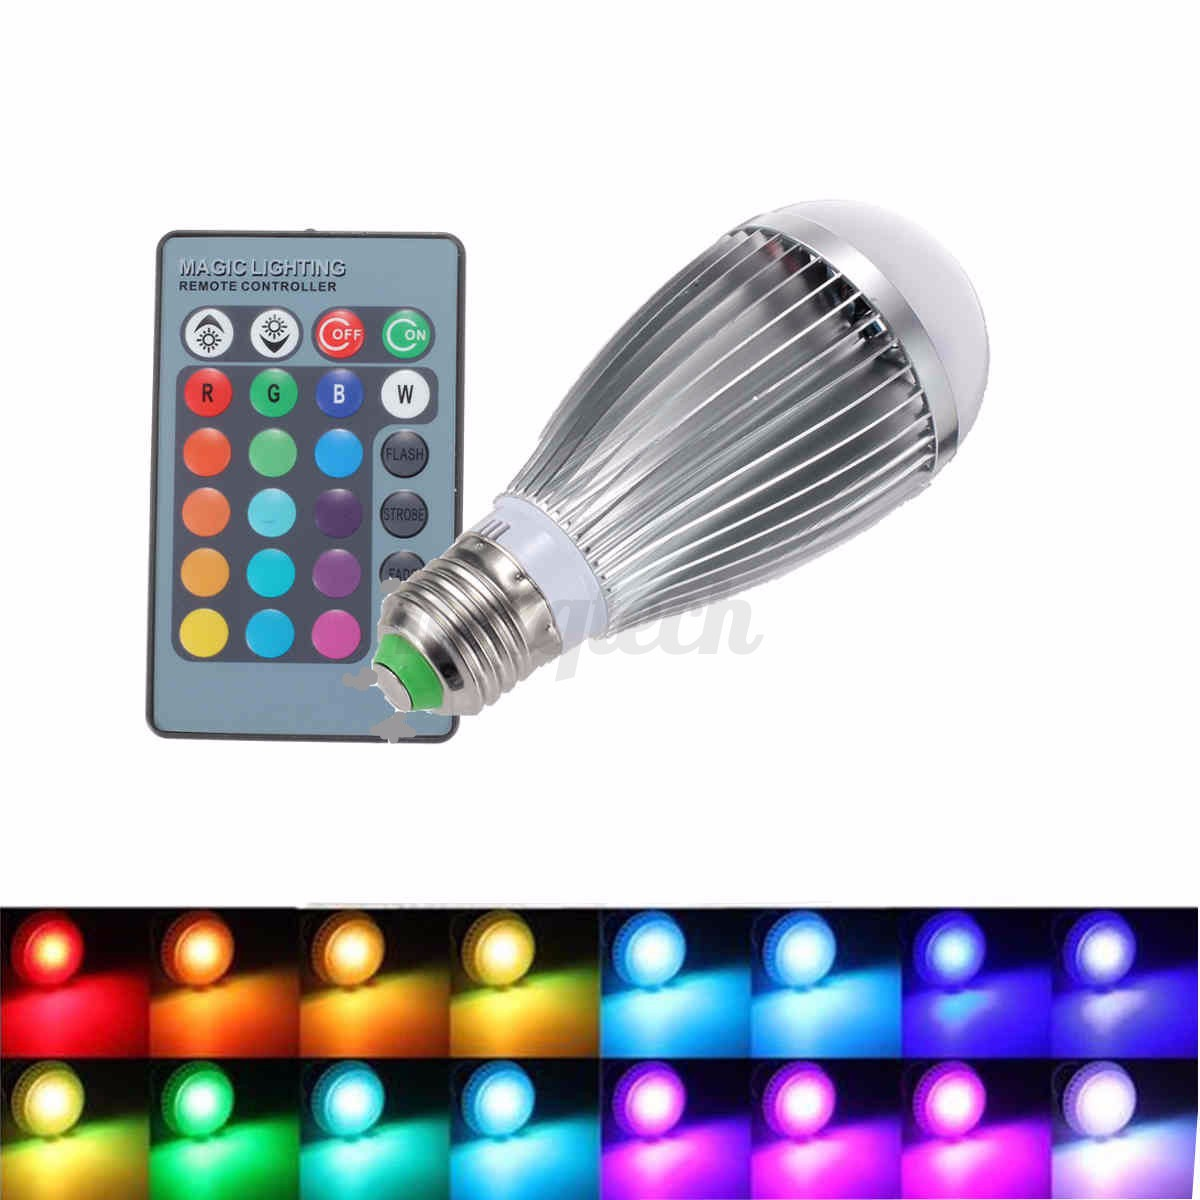 3w 9w 12w rgb e27 e14 b22 mr16 gu10 led light color changing lamp bulb remote ebay. Black Bedroom Furniture Sets. Home Design Ideas